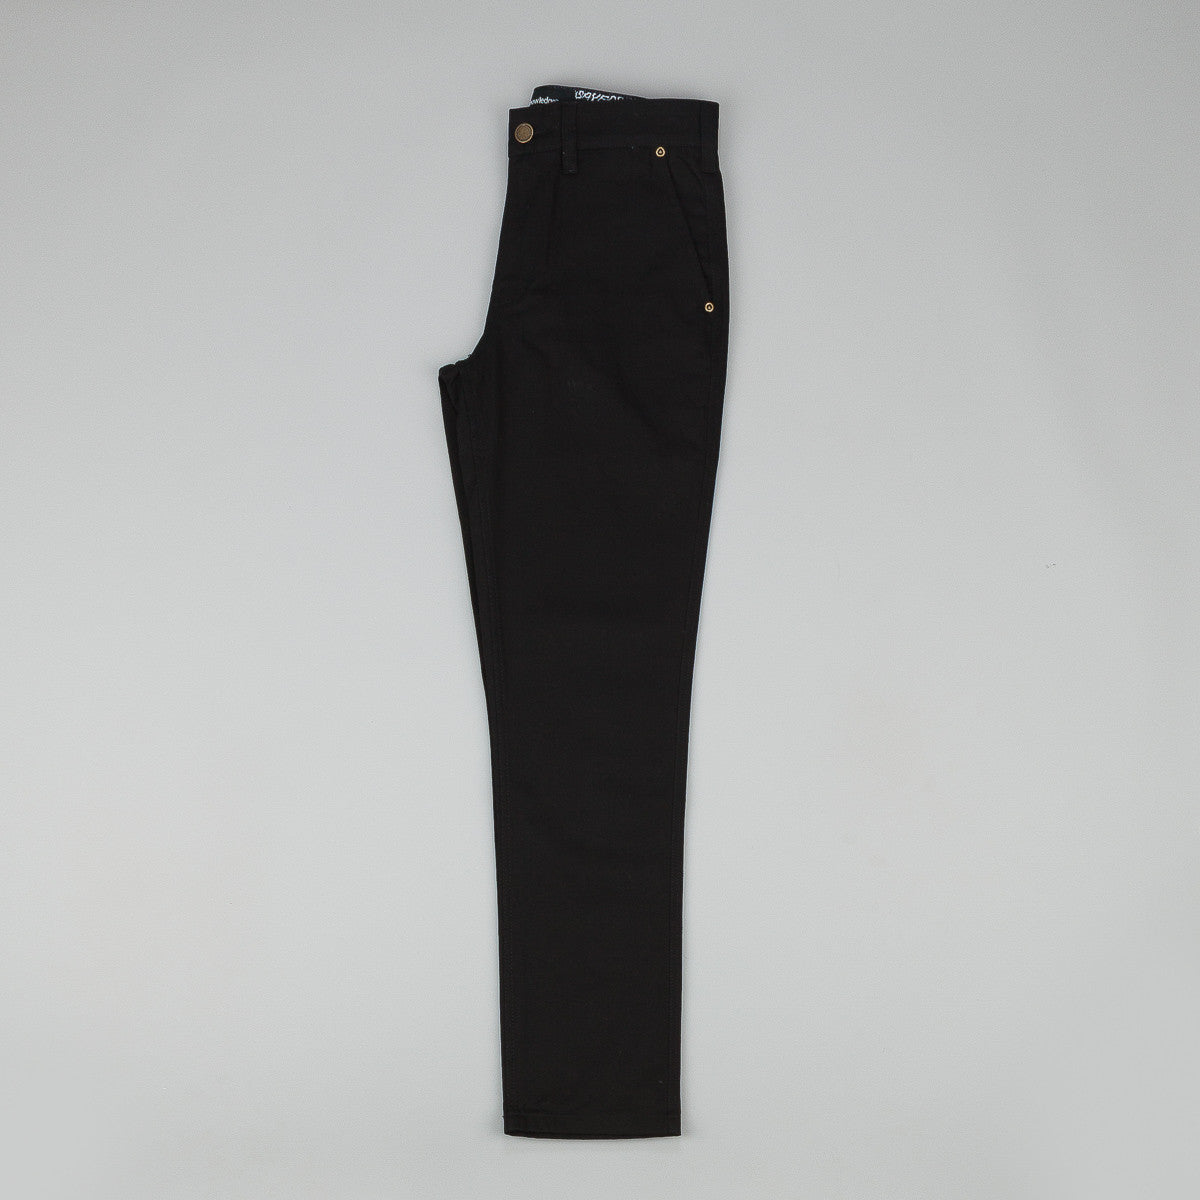 Doom Sayers X Know1edge Brasco Trousers - Black